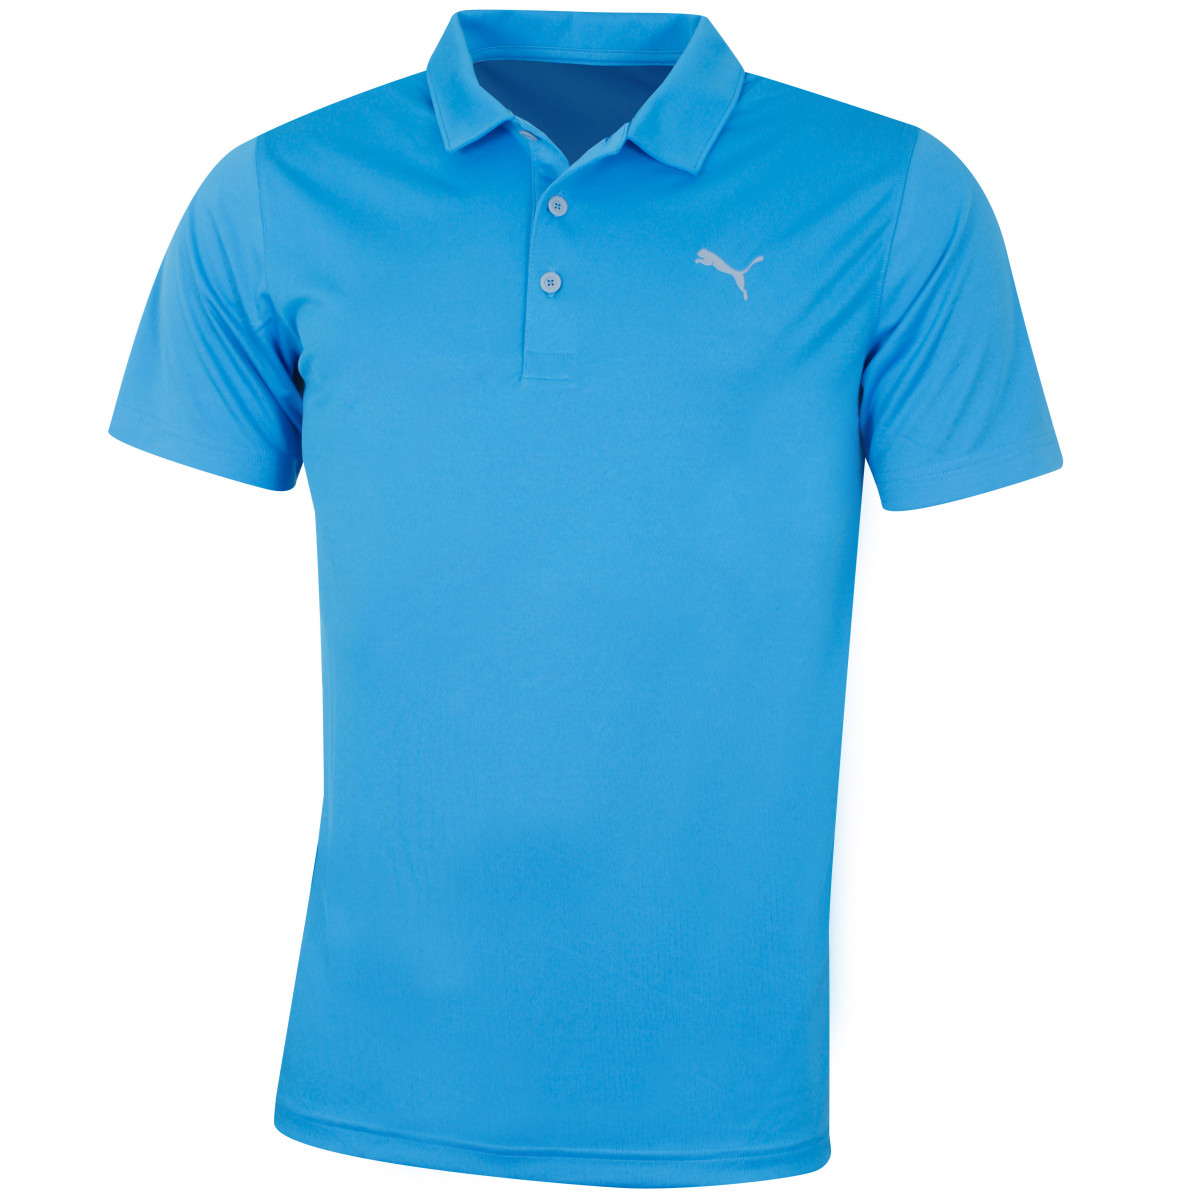 07b93167 Puma Golf Mens 2019 Rotation Solid Polo Shirt